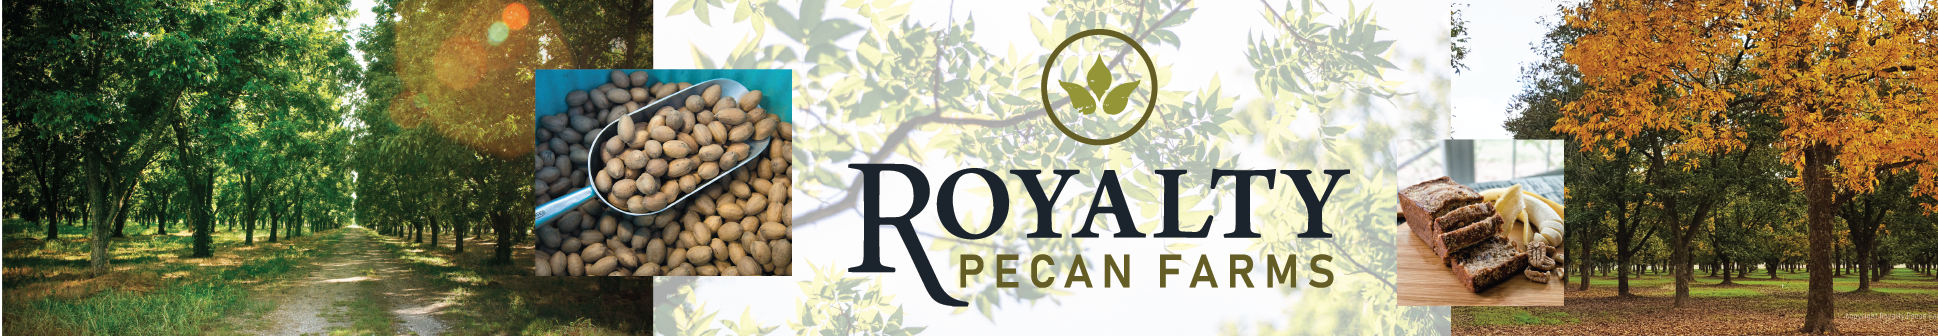 Enjoy gourmet food, wine, music, orchard tours, local artists, and other family fun at the Annual Royalty Pecan Harvest Festival! | Free admission all day